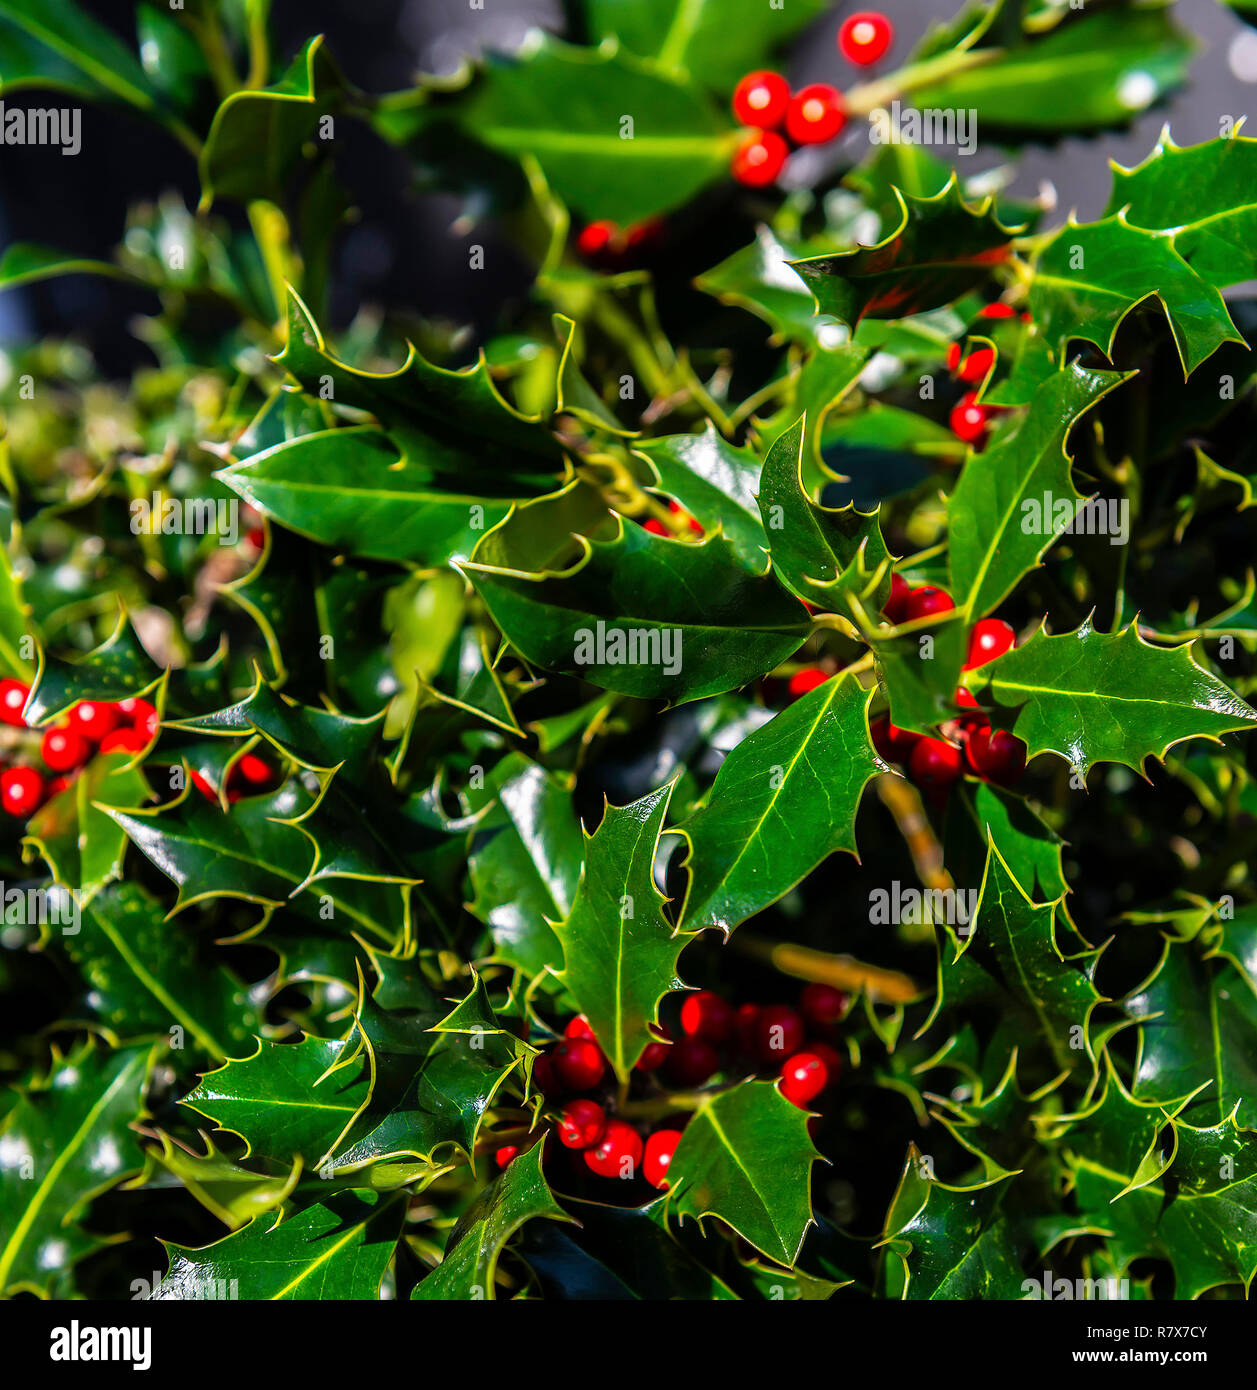 Holly bush with red berries The prickly green plant and its red berries are a popular ornament to enliven homes with little Christmas spirit - Stock Image